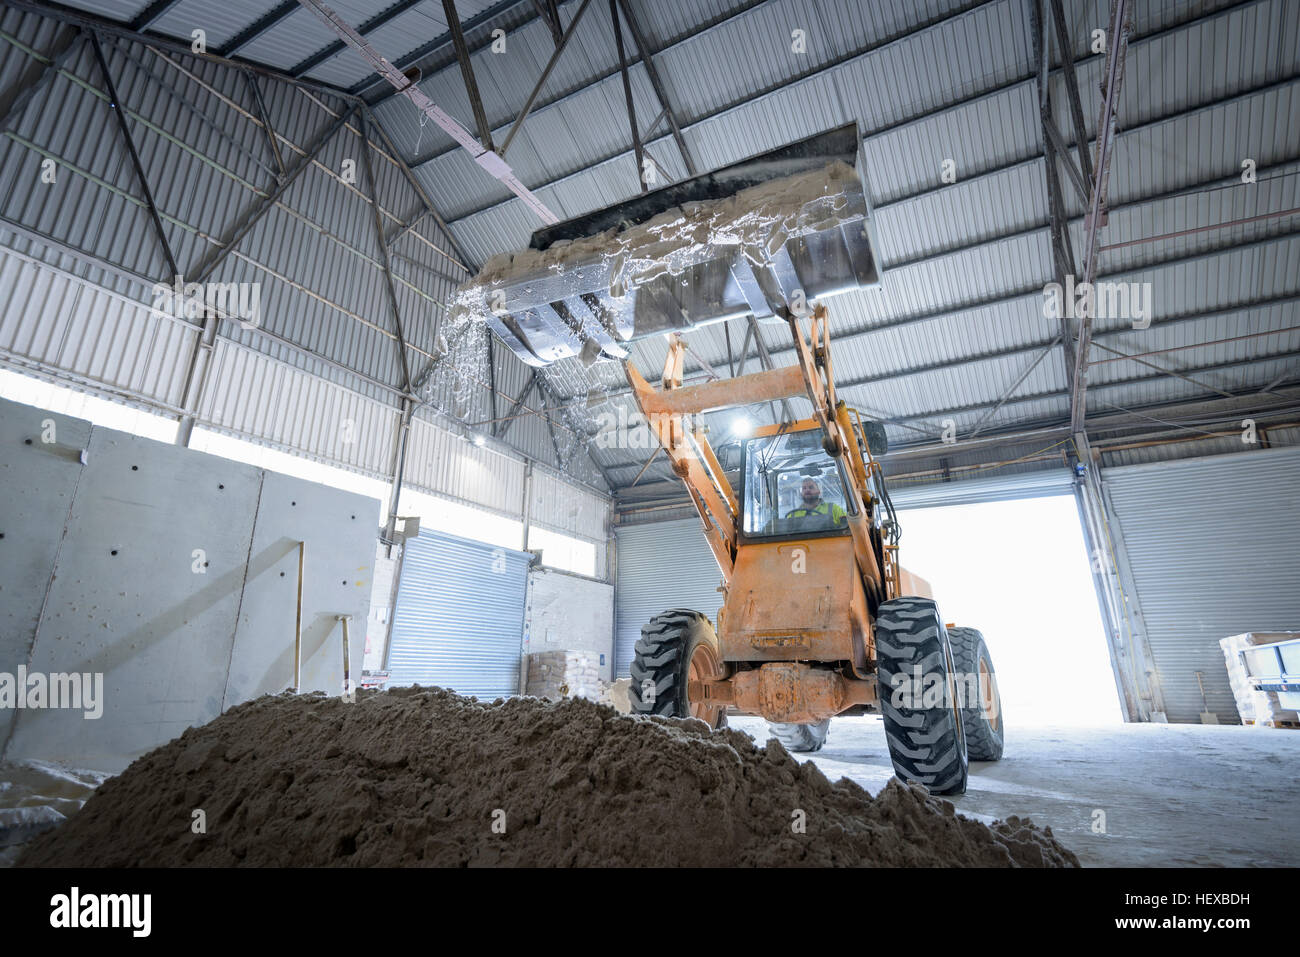 Digger with sand in architectural stone factory - Stock Image